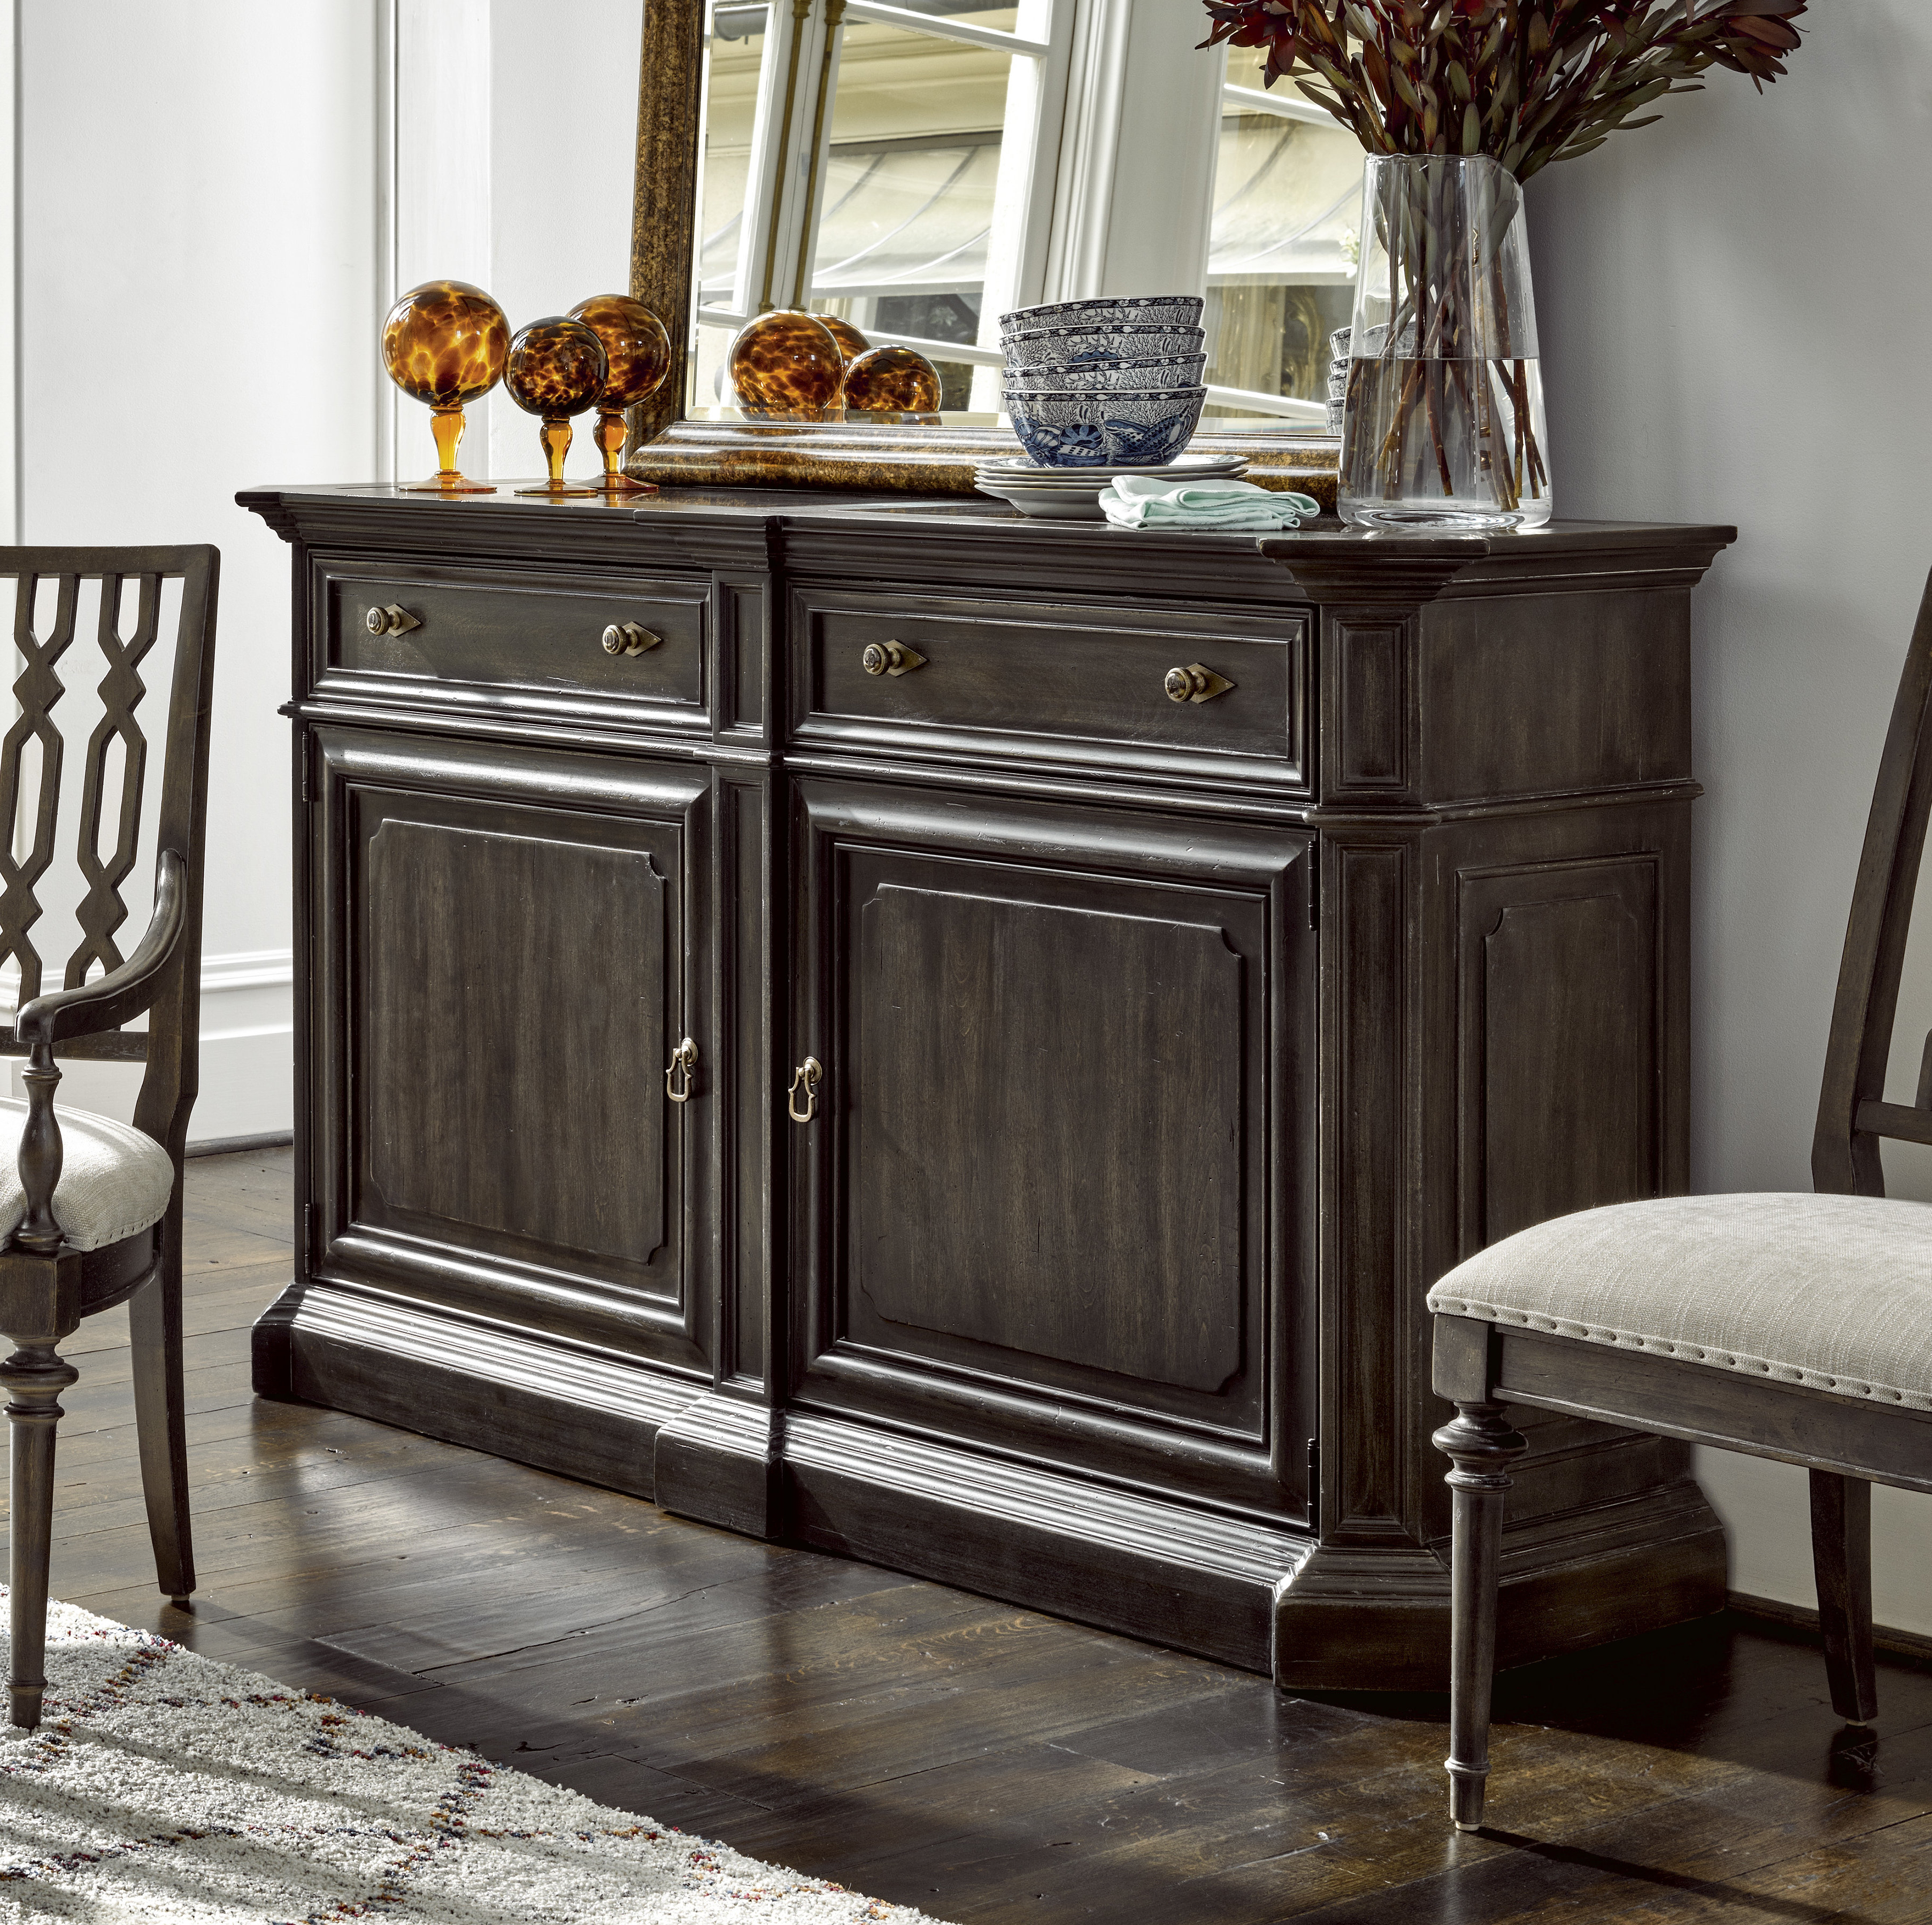 Trendy Chaucer Credenza Pertaining To Hewlett Sideboards (View 18 of 20)